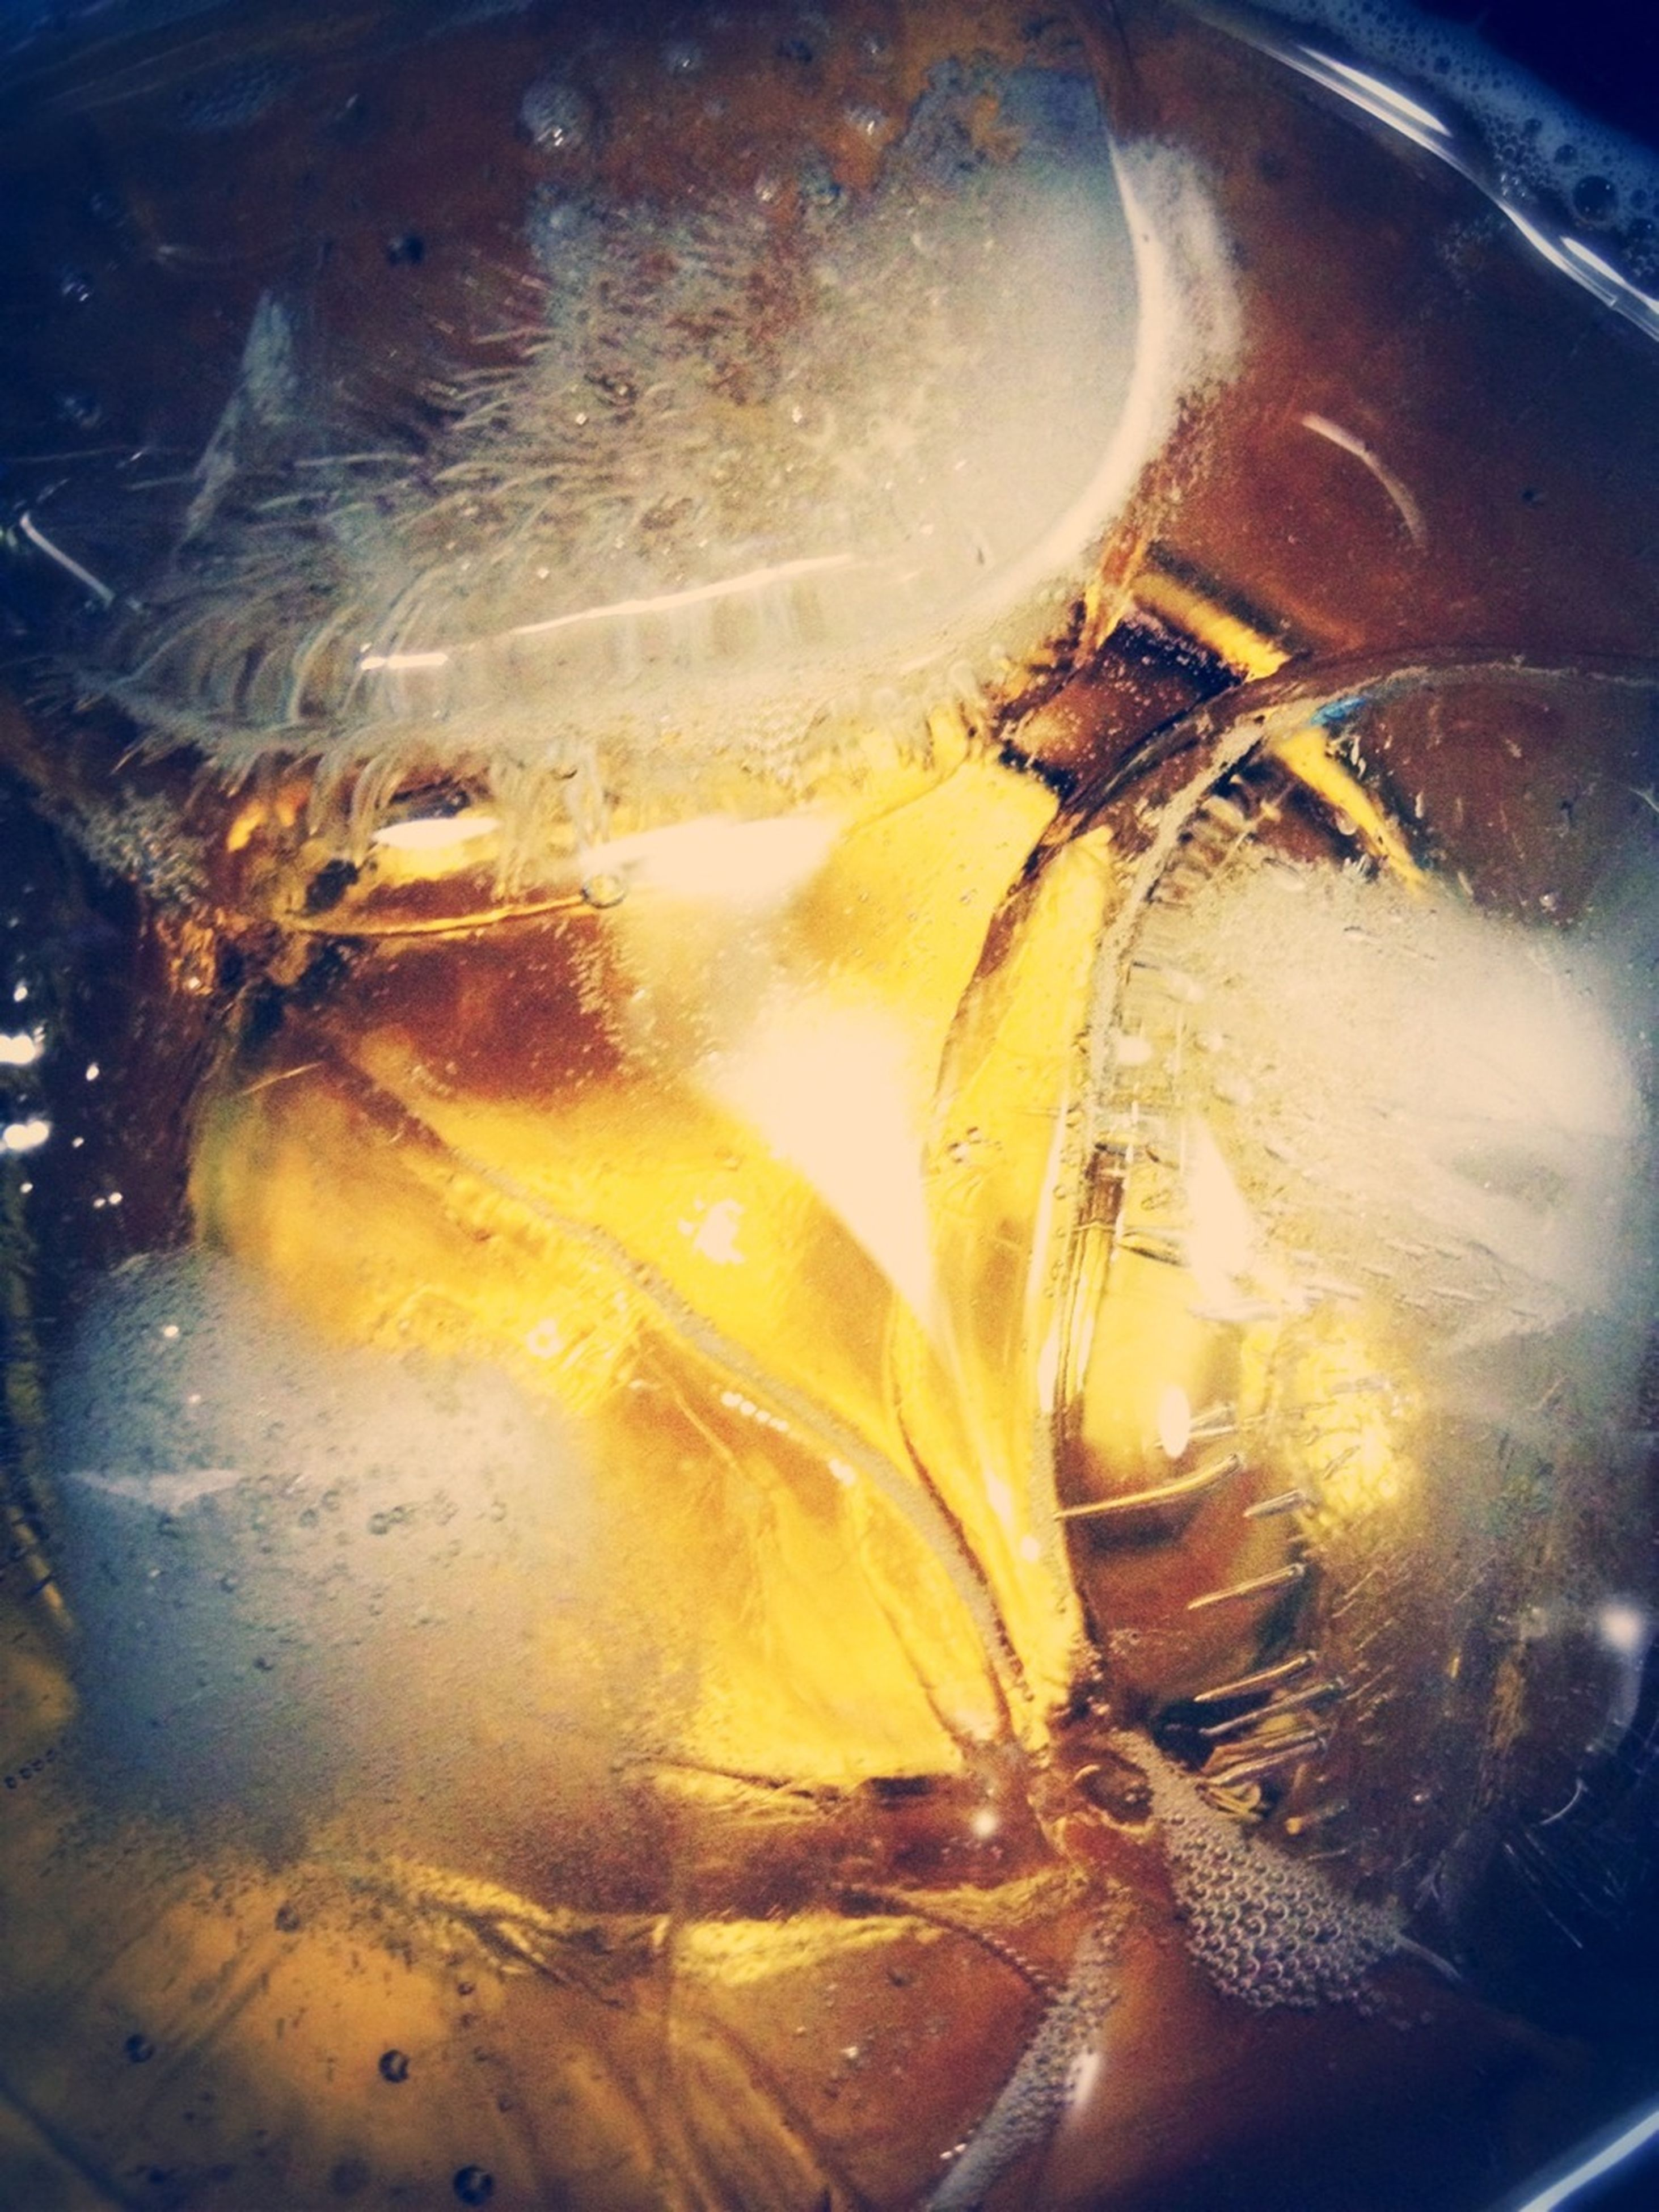 transparent, water, close-up, glass - material, motion, reflection, wet, no people, yellow, drink, refreshment, nature, splashing, transportation, sunlight, drop, indoors, glass, freshness, long exposure